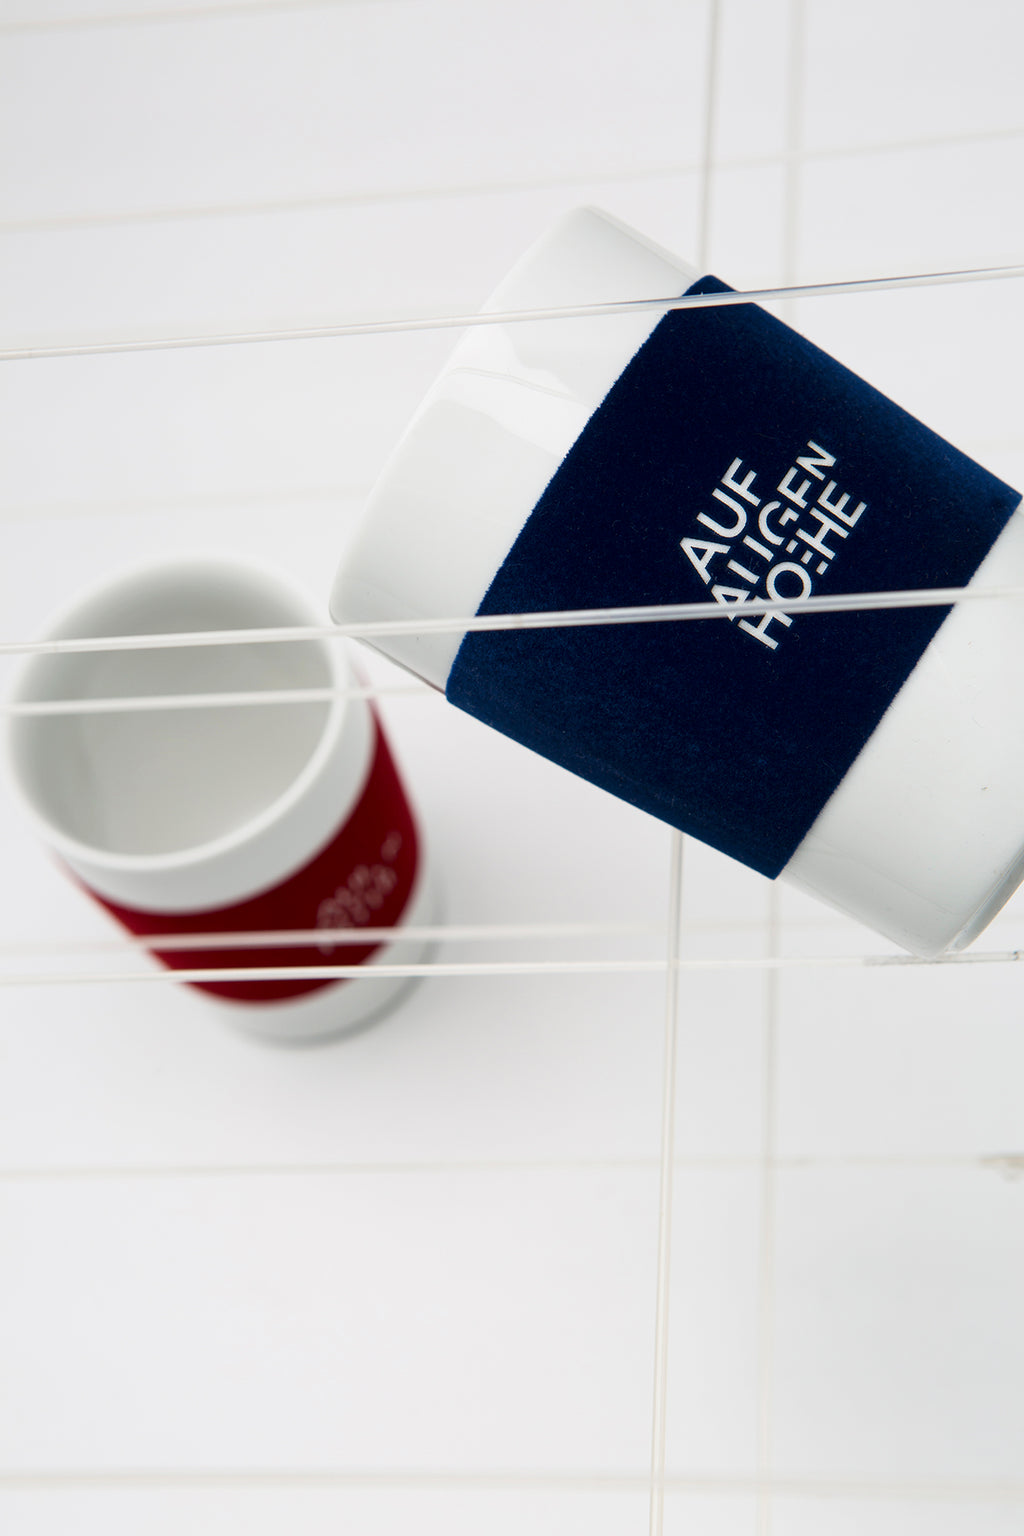 two mugs with logo in red and blue